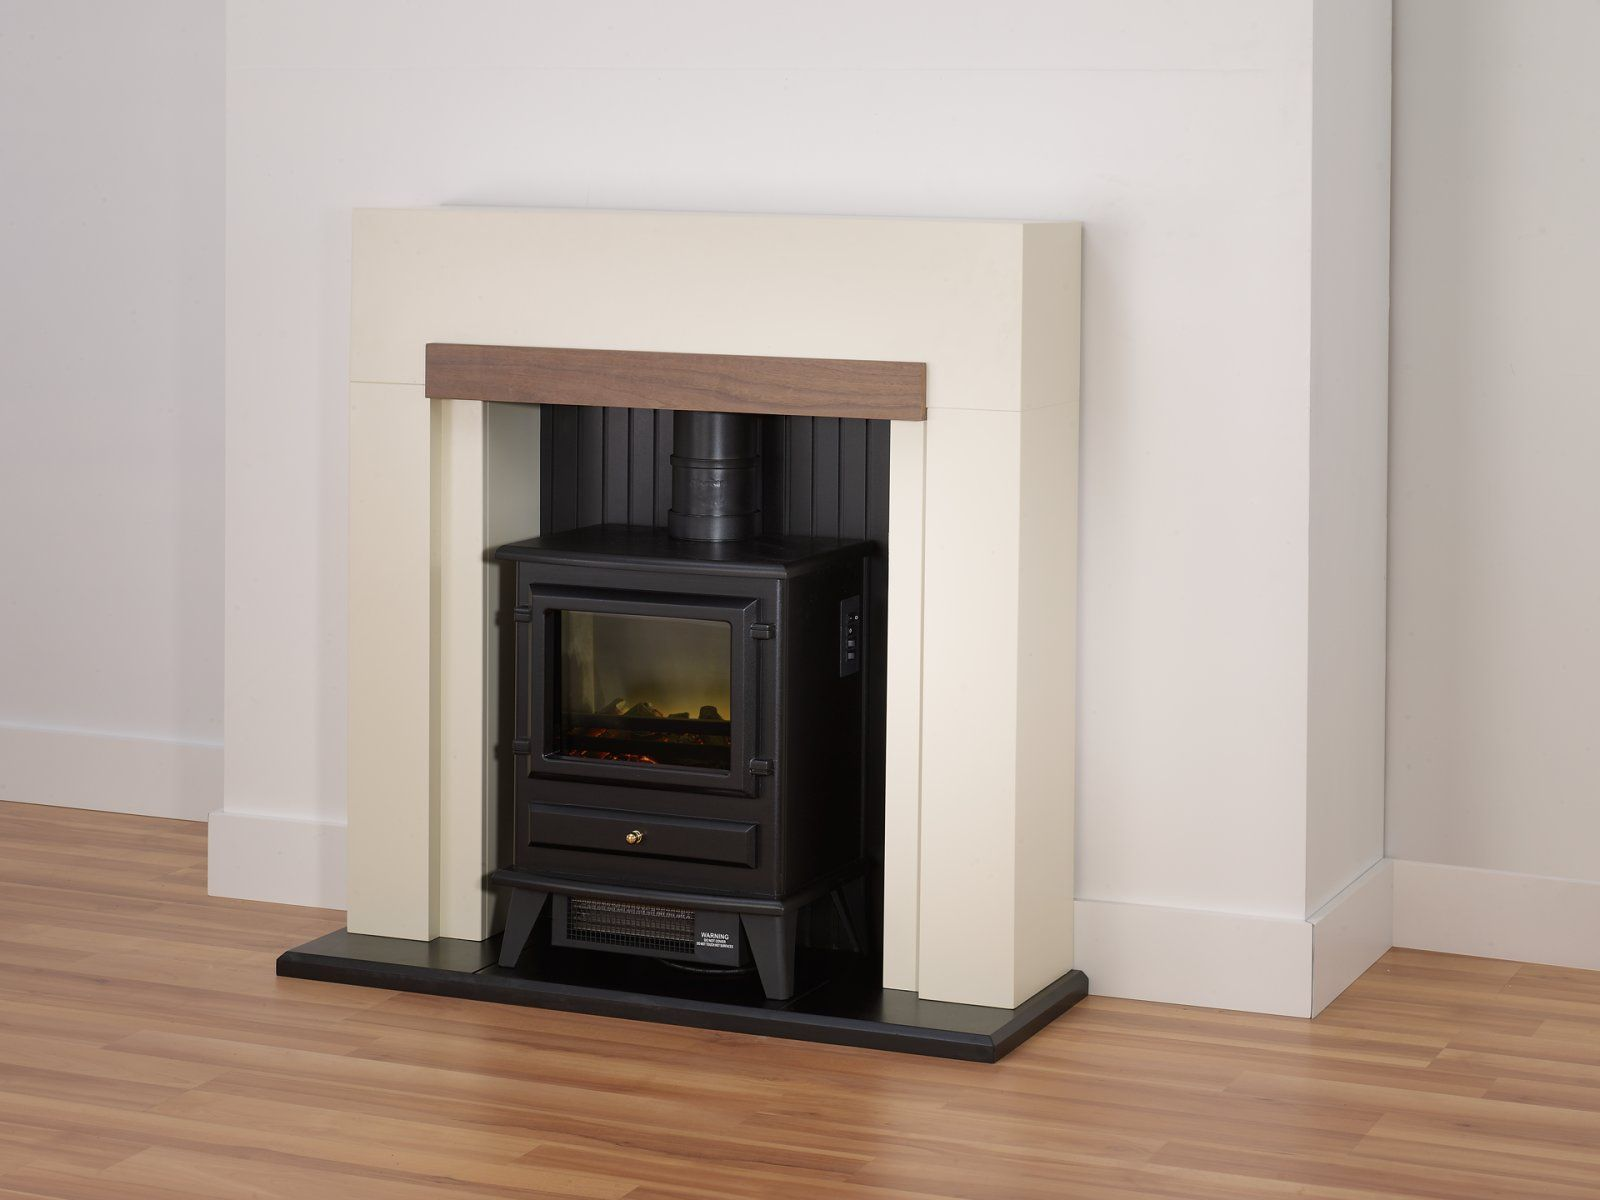 Adam Fire Surrounds Salzberg Electric Fire Suite Place With Stove